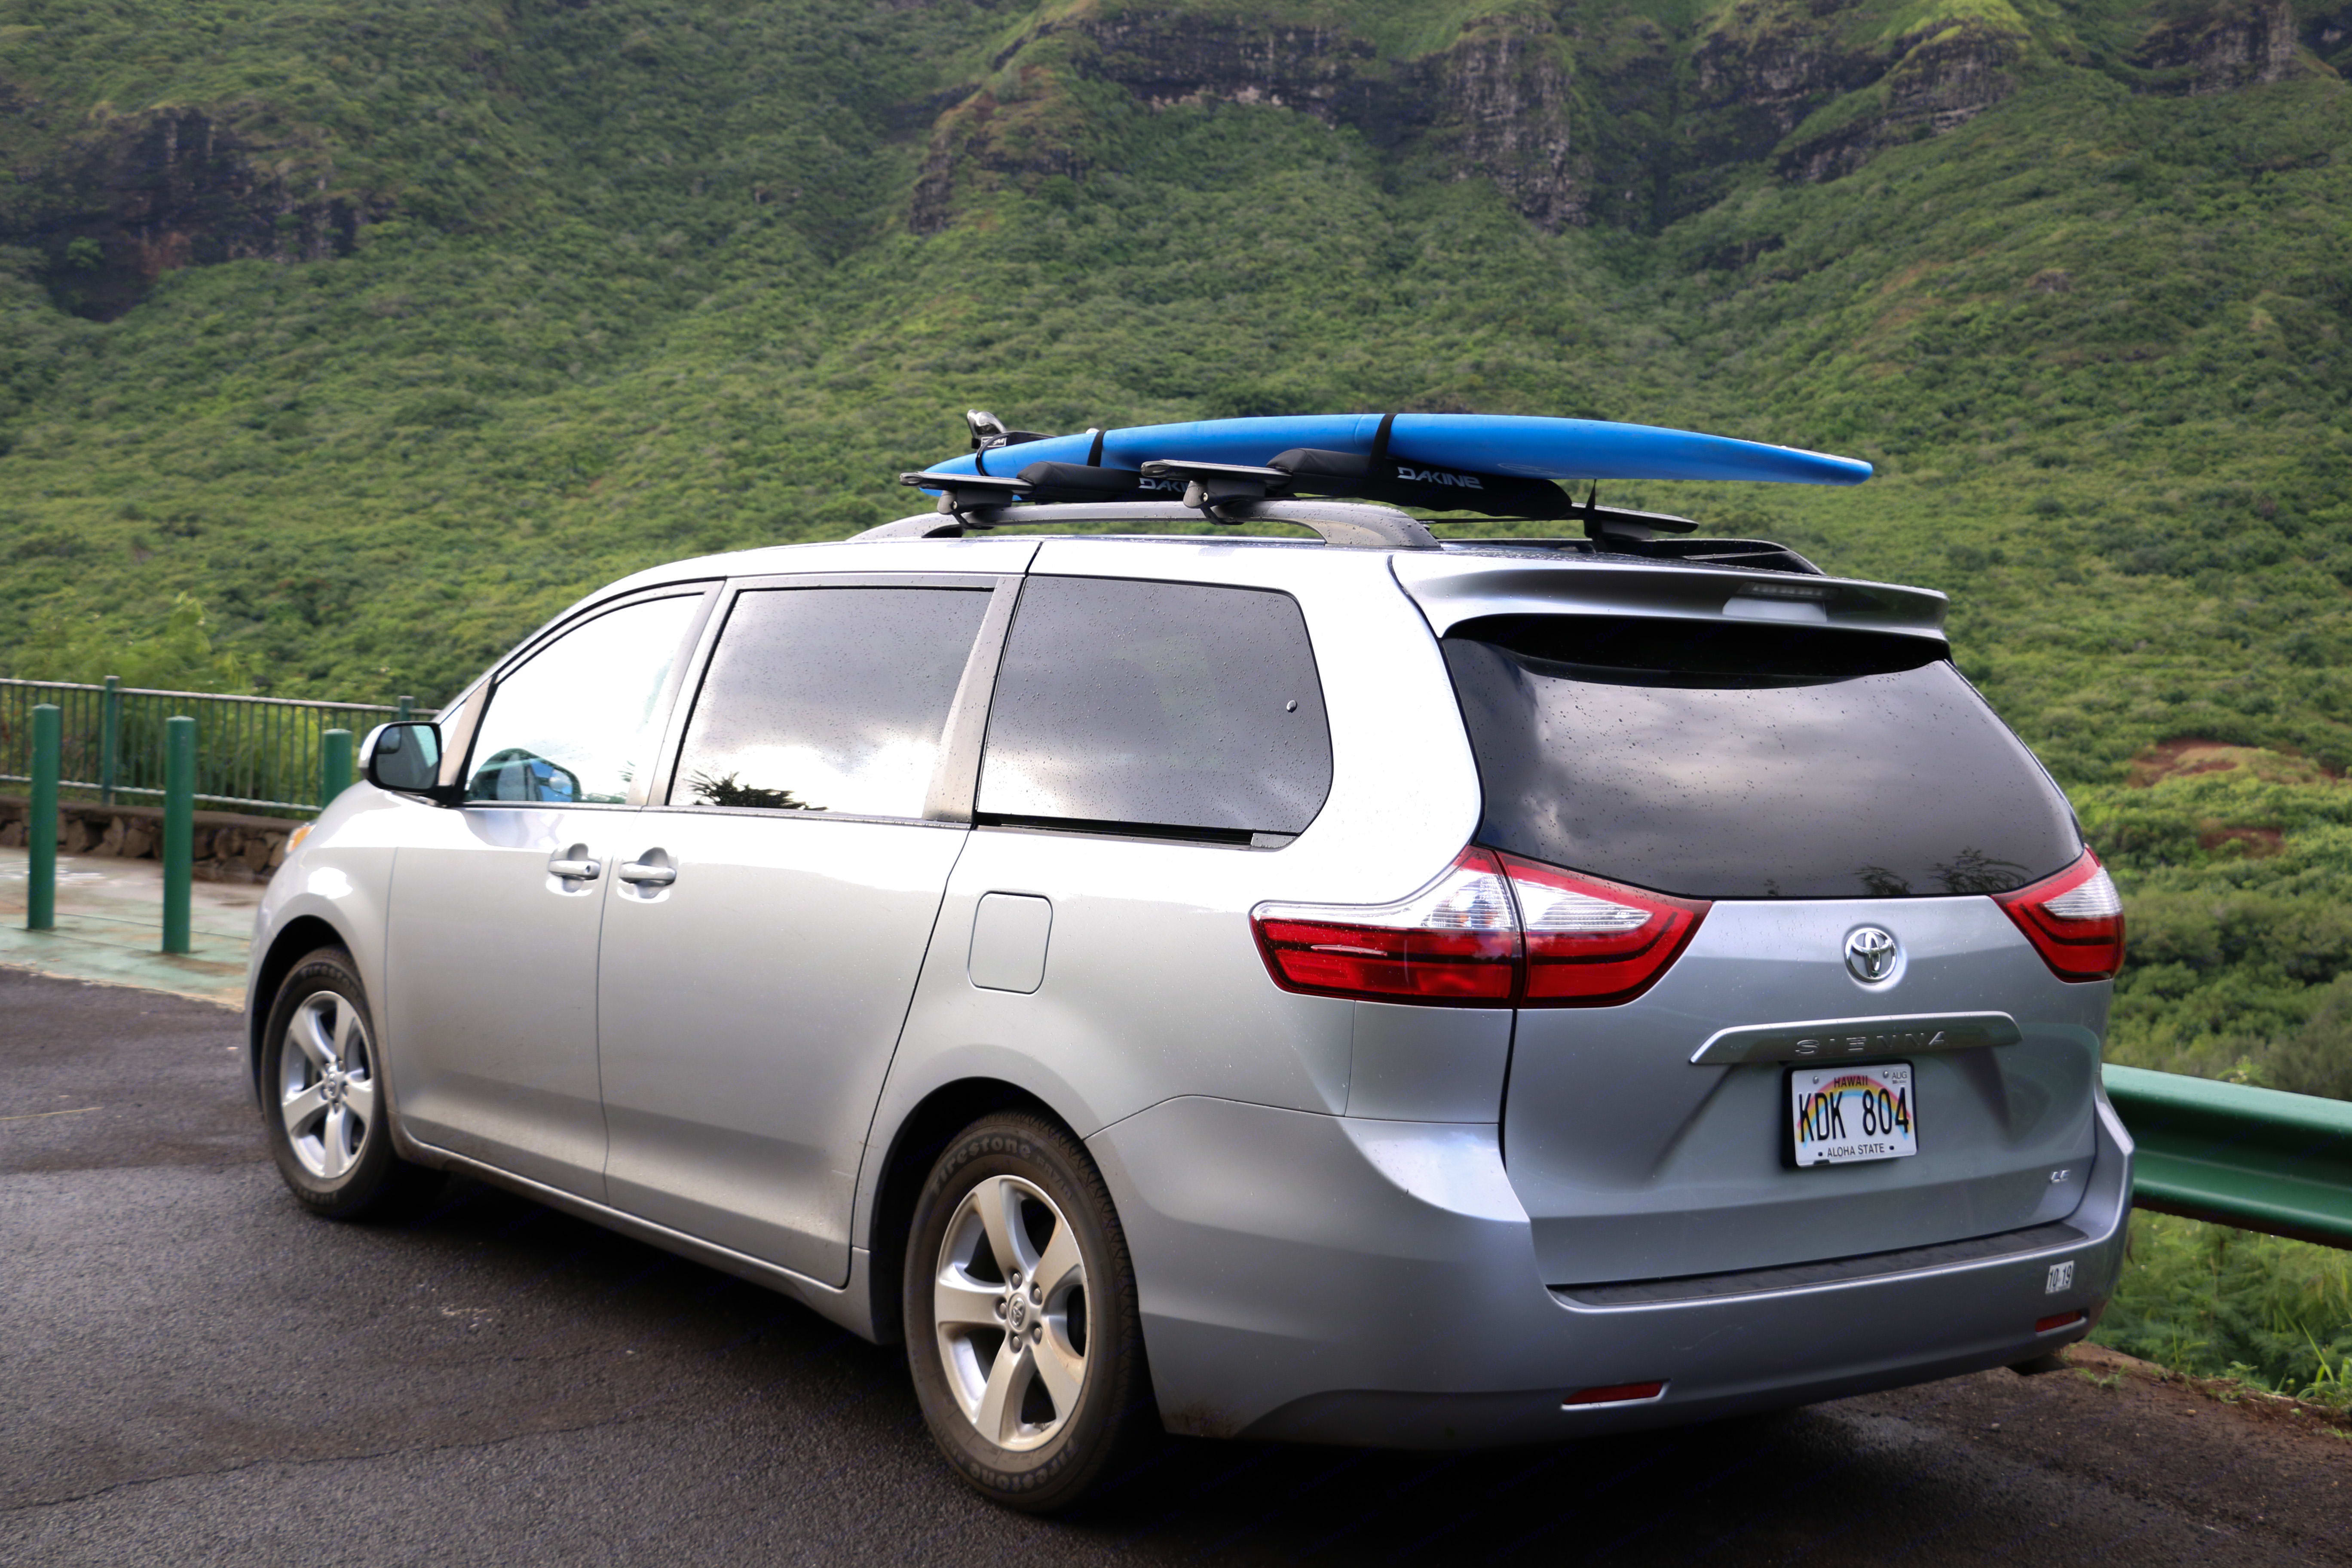 We offer surfboard and SUP board rentals by the week! Just $50 and we'll hook you up with a beginner board to use. . Toyota Sienna 2015